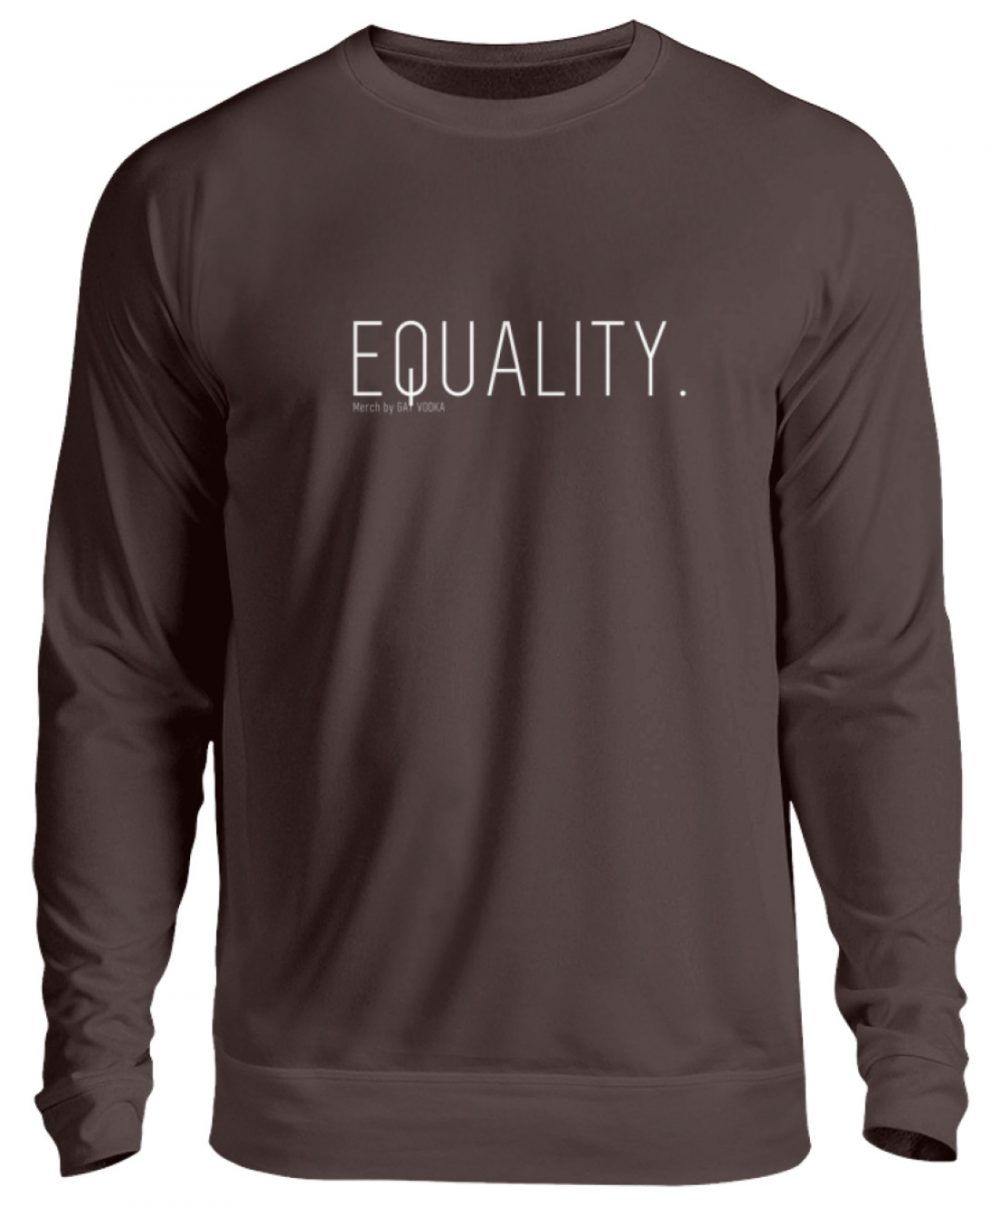 EQUALITY. - Unisex Pullover-1604